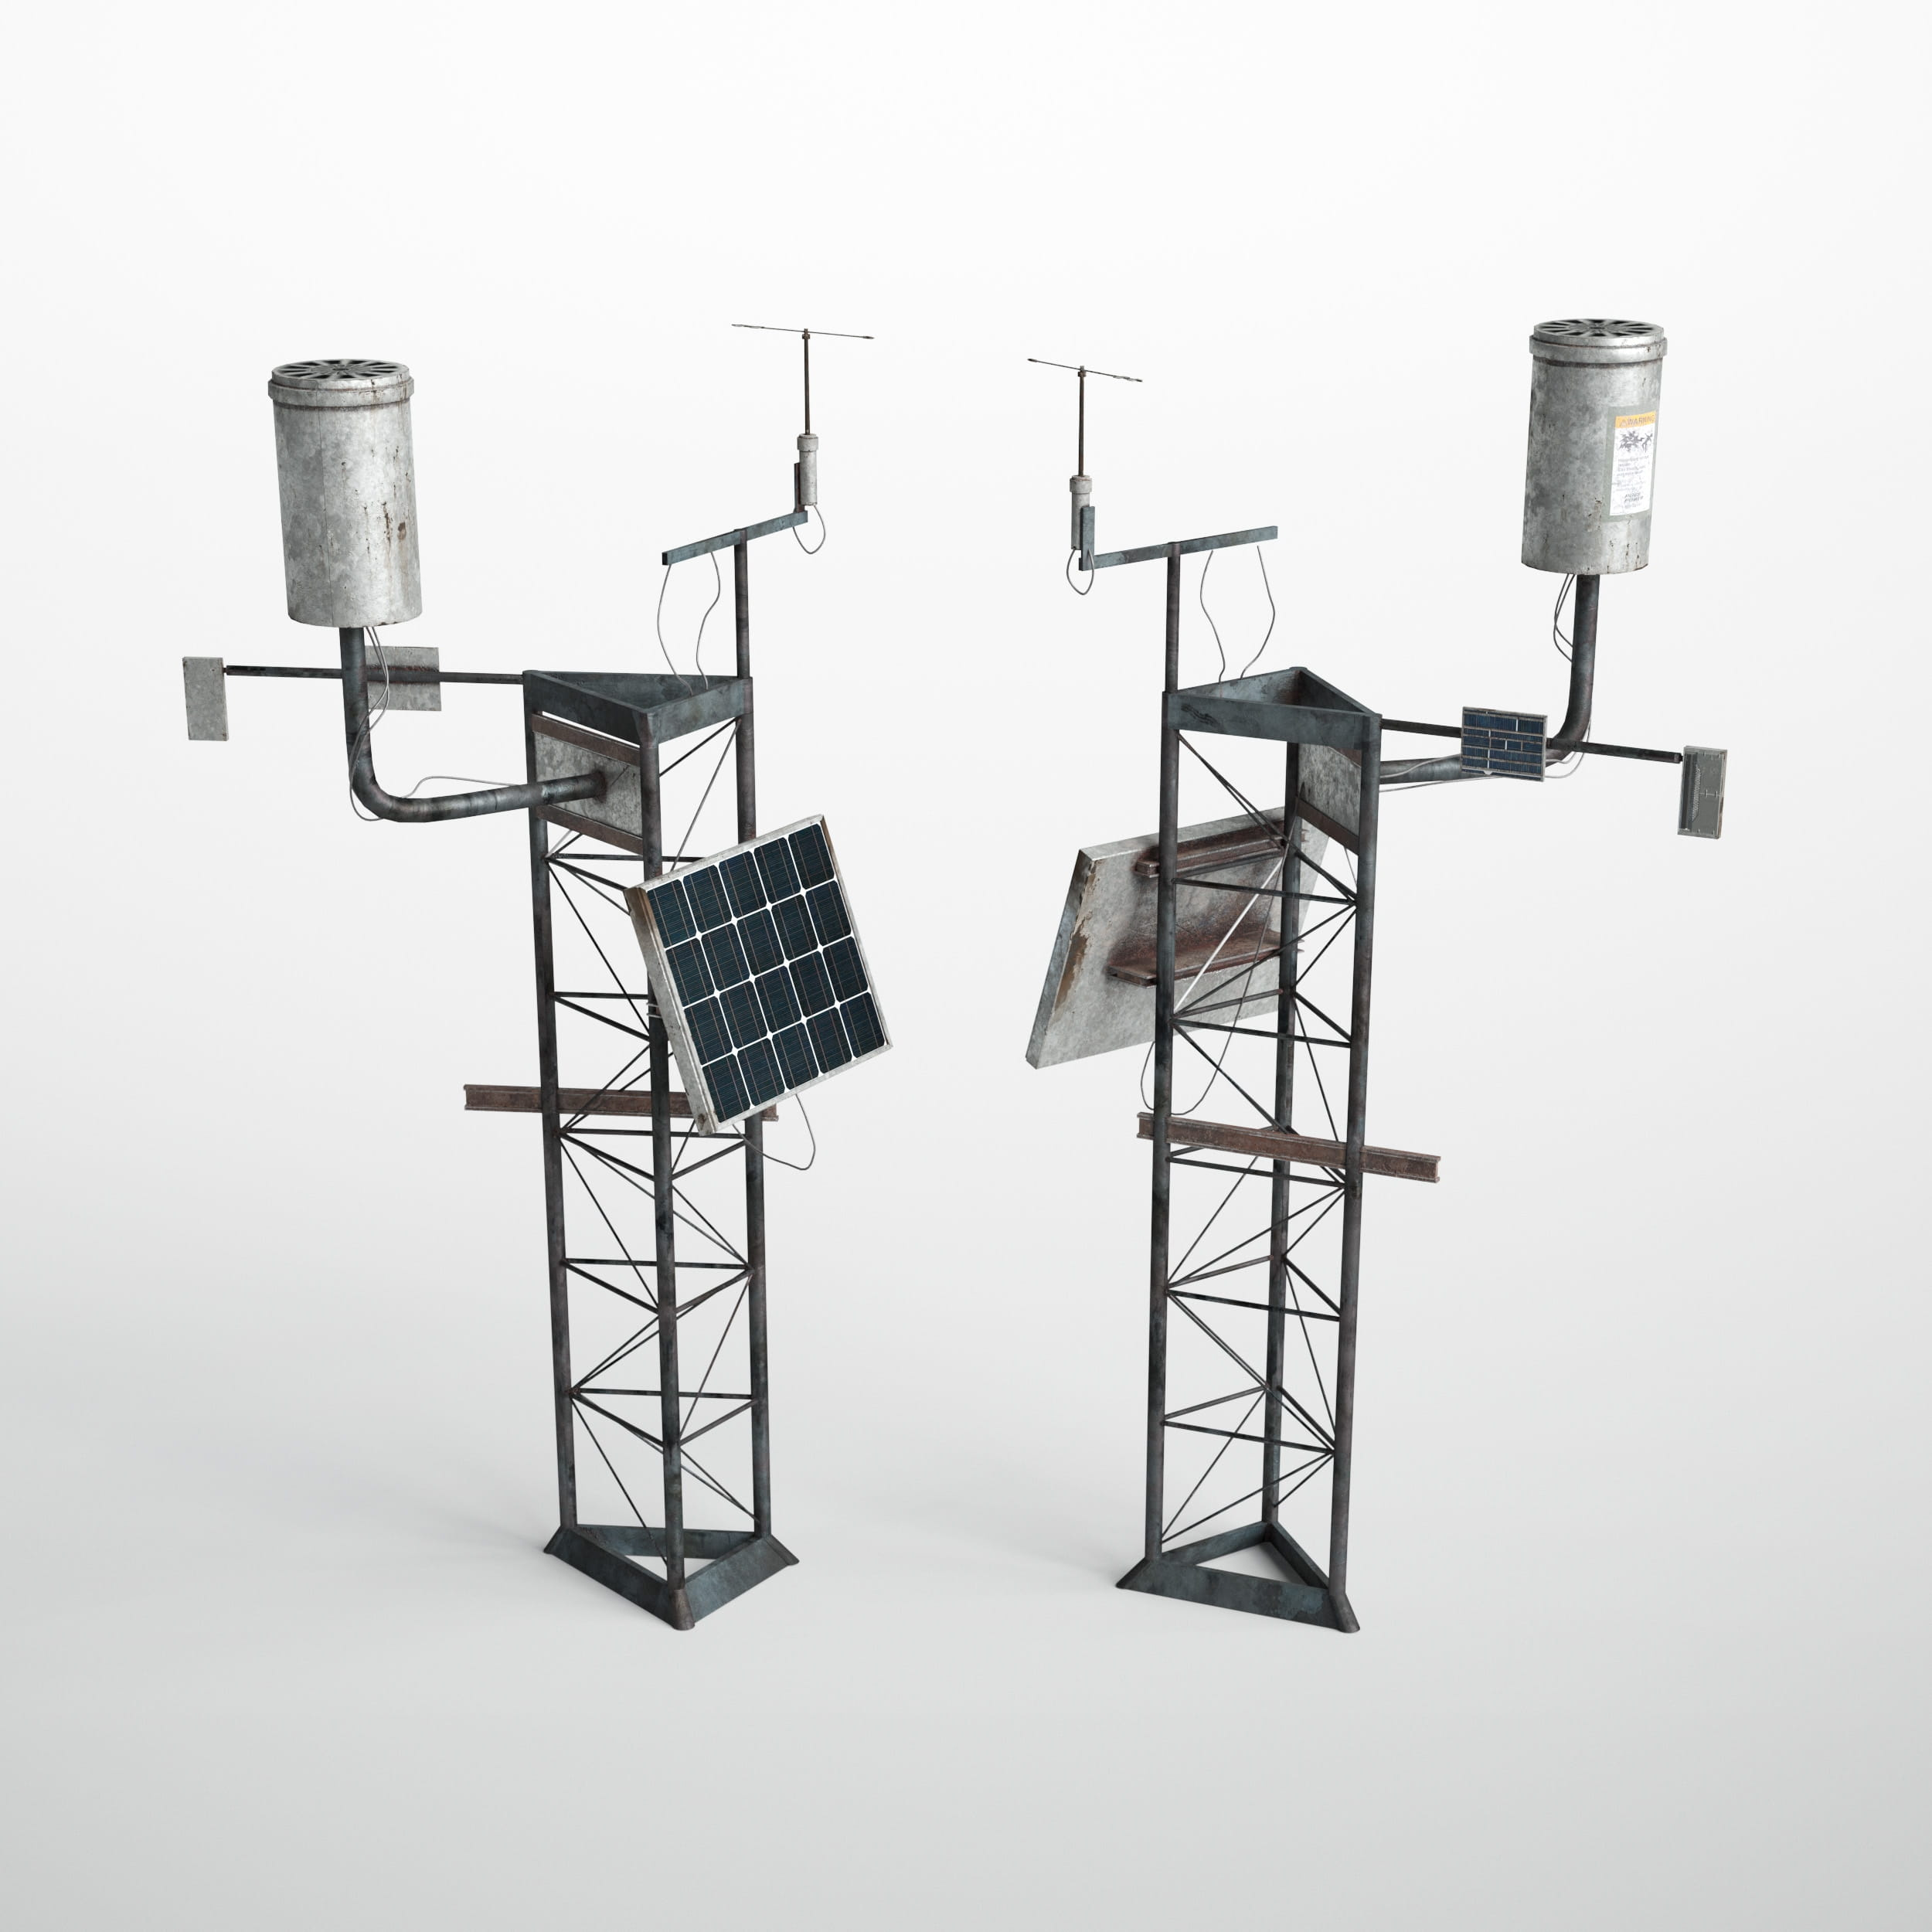 automatic weather station 34 AM227 Archmodels